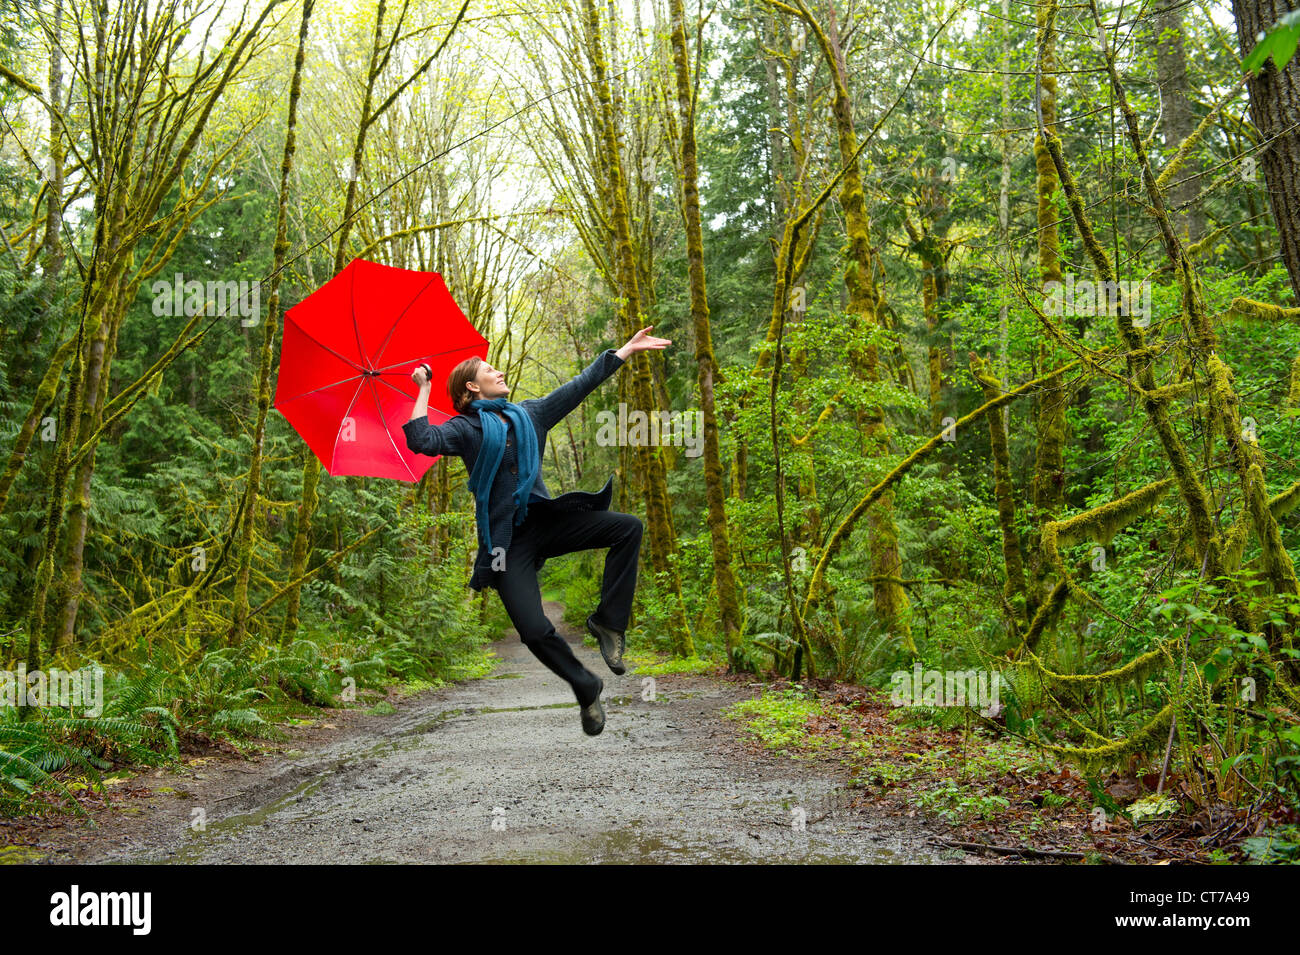 Jumping woman in forest with red umbrella Stock Photo